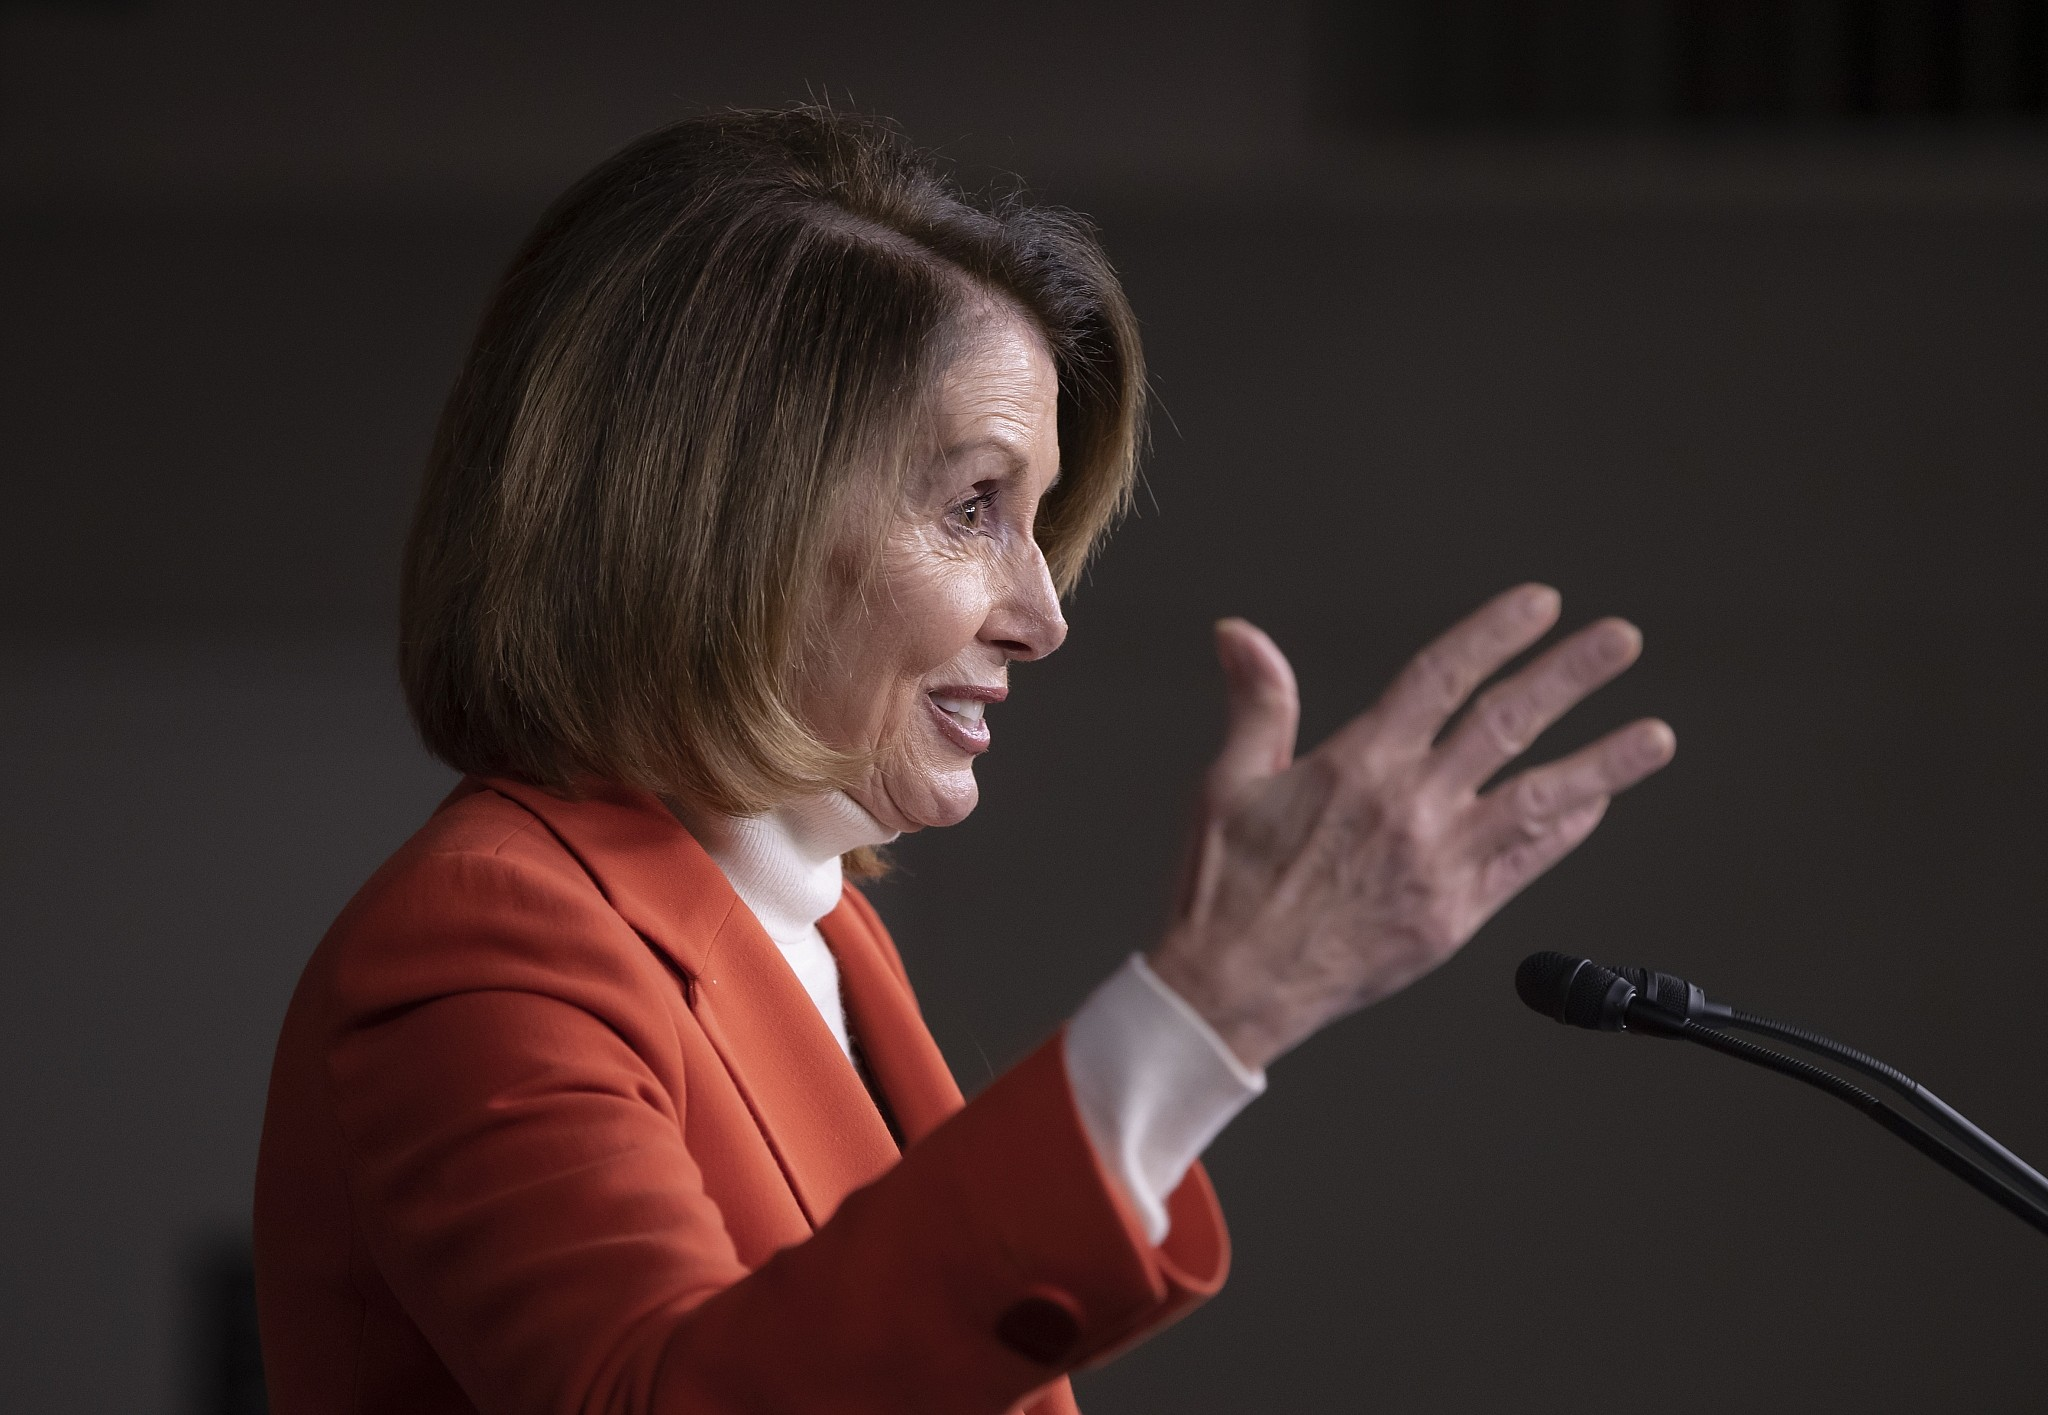 Democrats say they'll oppose Pelosi, back 'new leadership'